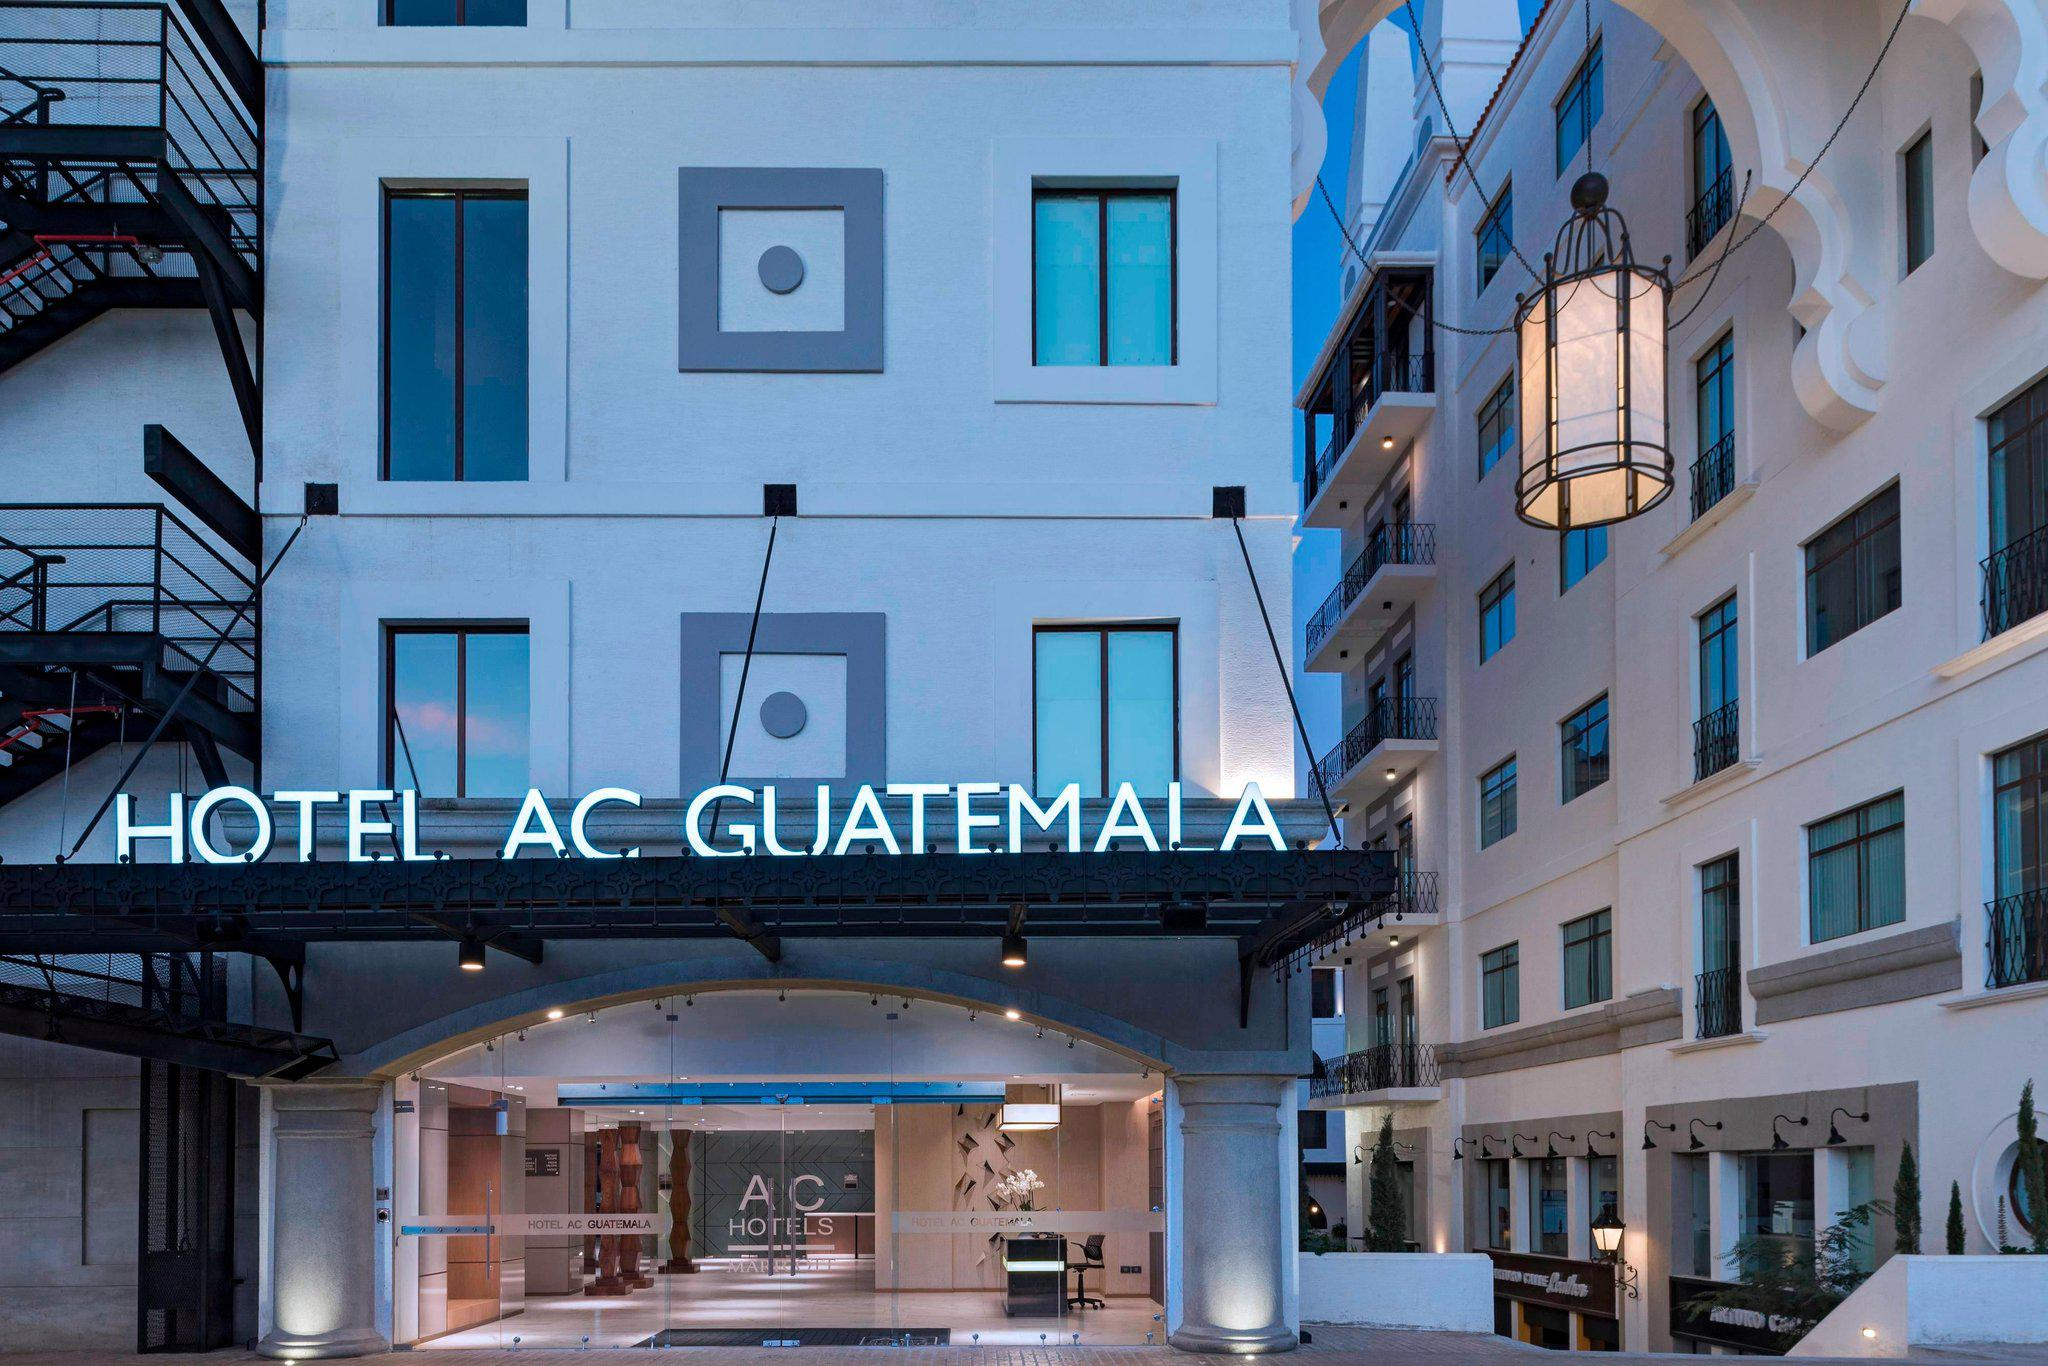 AC Hotel by Marriott Guatemala City